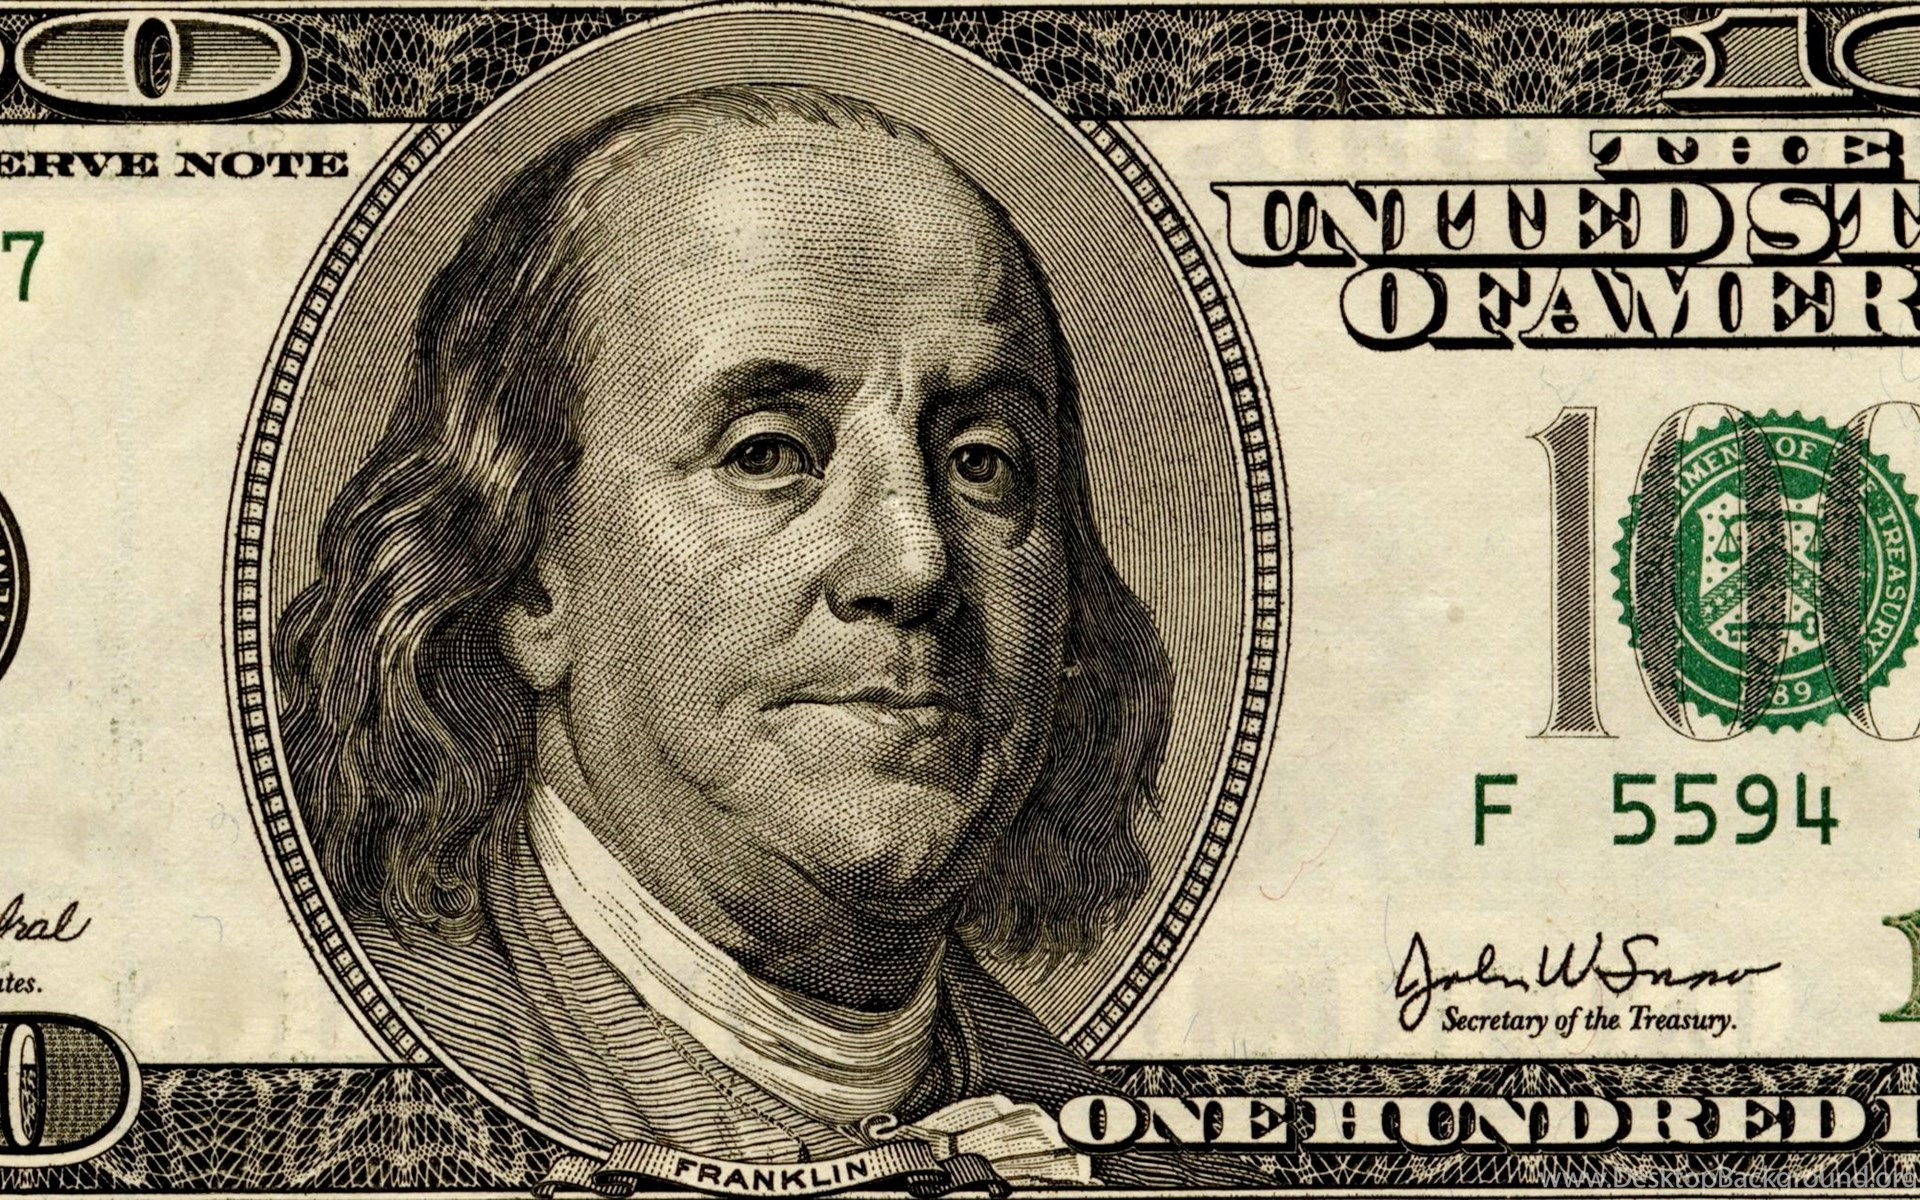 16 picture of 100 dollar bill wallpapers hd wallpapers galeries desktop background - 100 dollar wallpaper ...